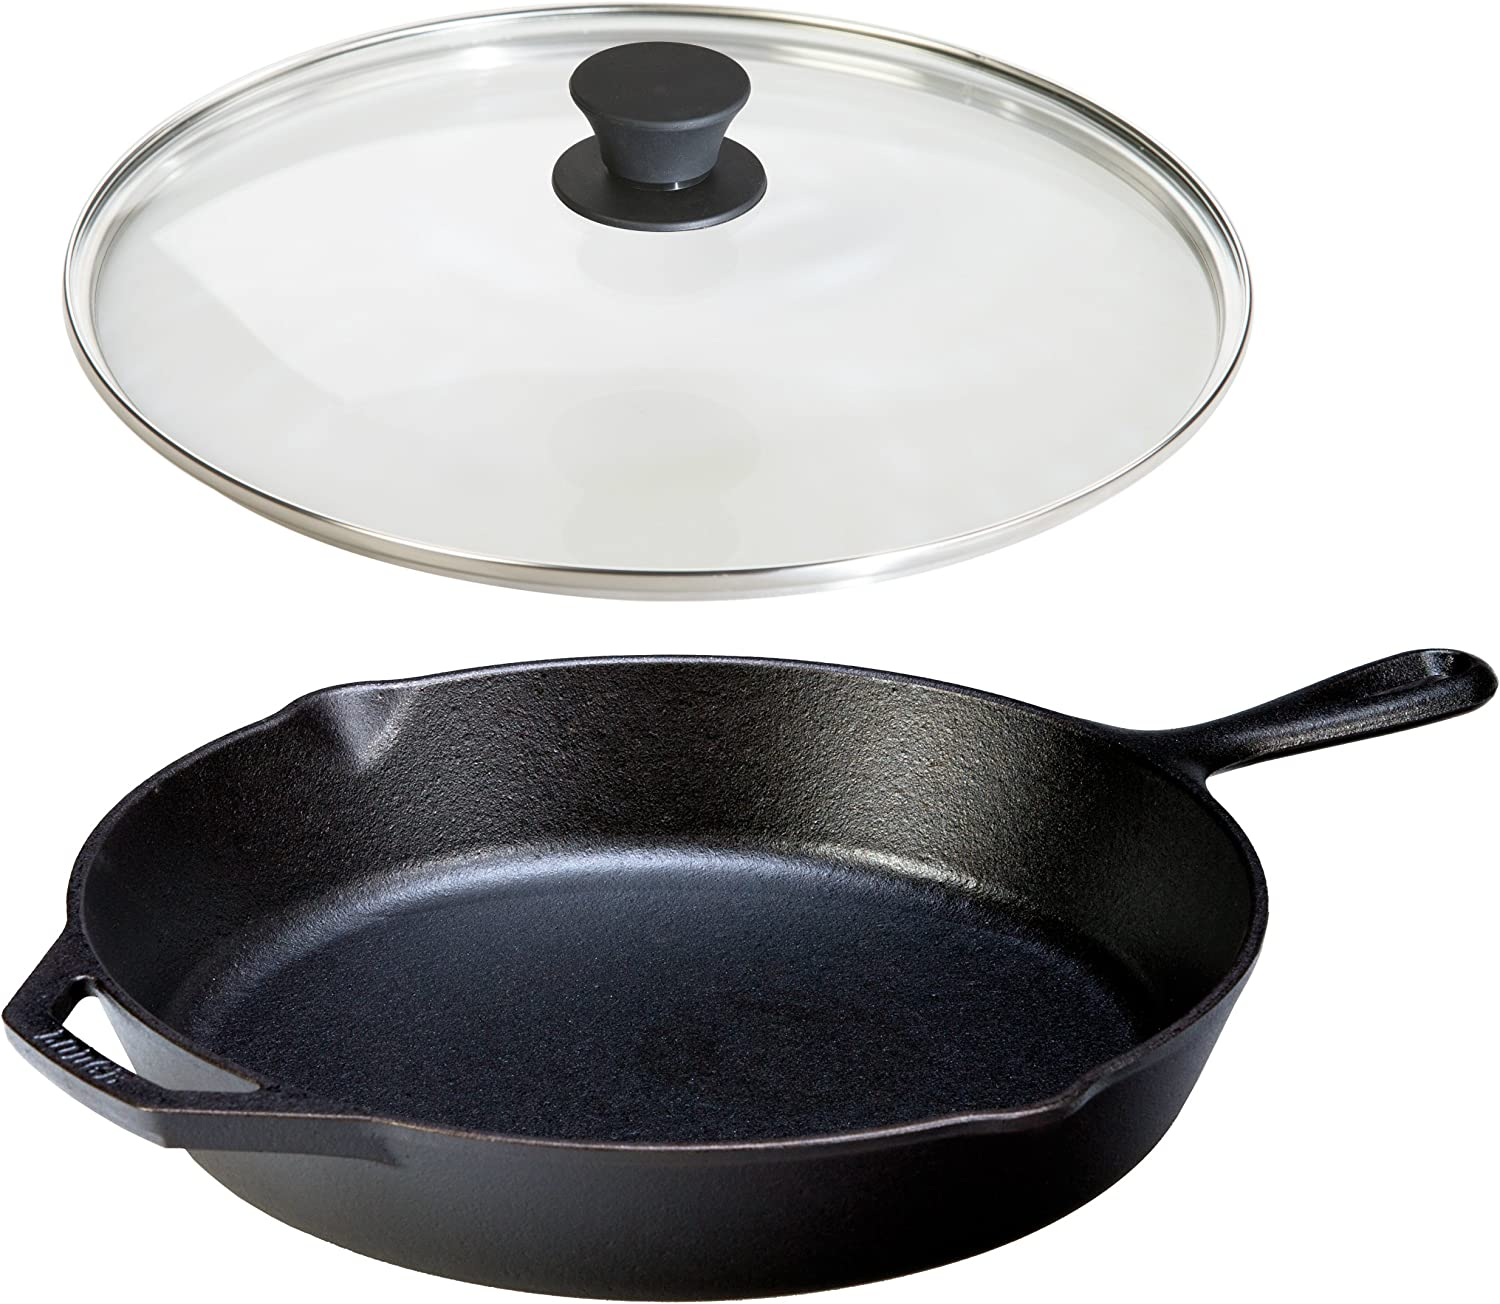 Lodge Seasoned Cast Iron Skillet w Tempered Glass Lid (12 Inch) - Medium Cast Iron Frying Pan With Lid Set